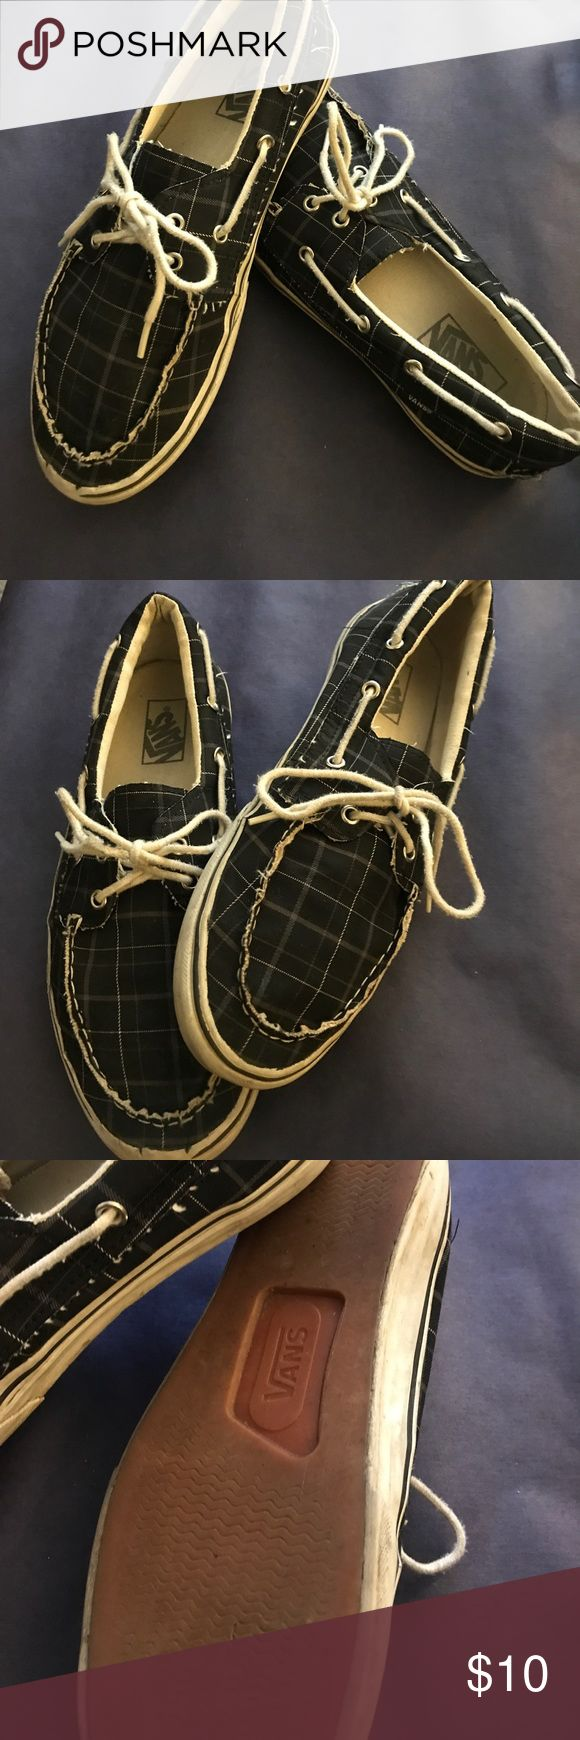 Men's size 10 Vans Boat Shoes Men's size 10 Vans Boat Shoes, plaid black and white lace up. Broken in and still have a ton of life left. Vans Shoes Boat Shoes